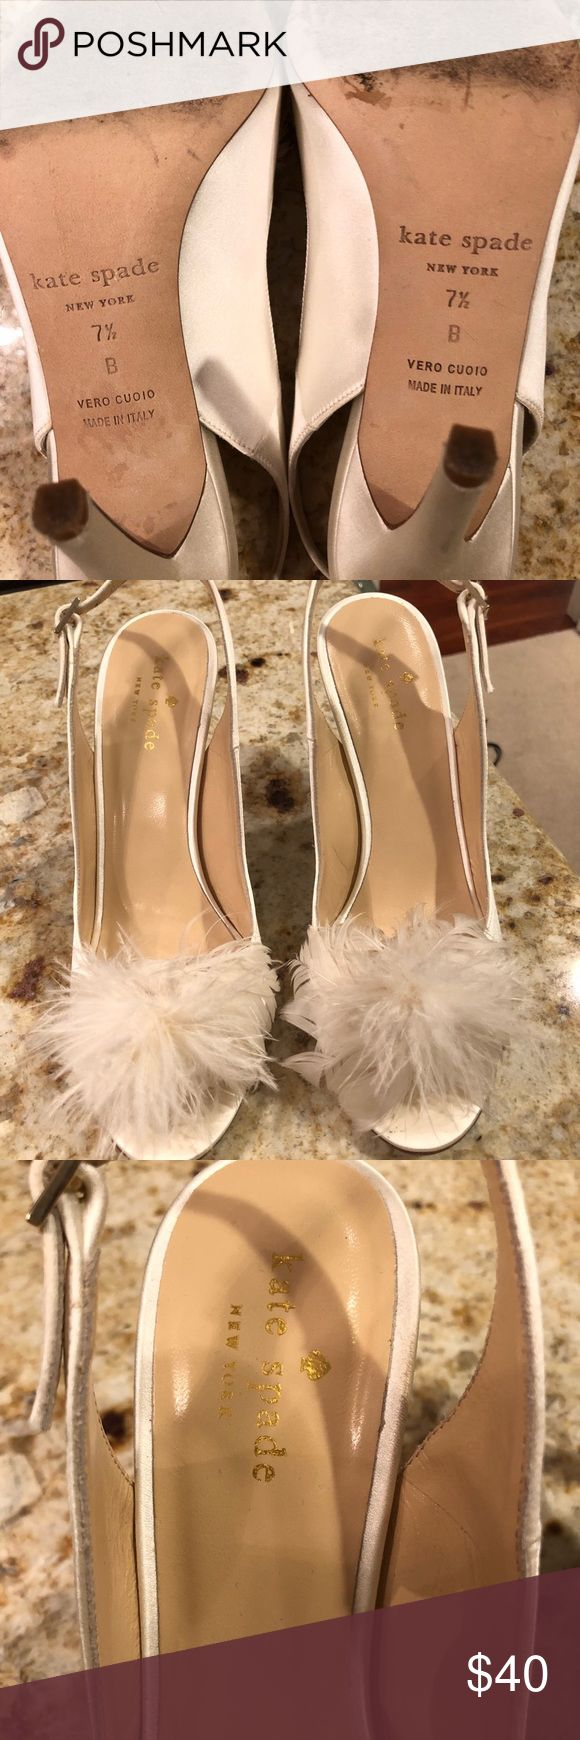 6209 Best My Posh Picks Images On Pinterest Ankle Closure And Clarette Wedges Cyra Brown Kate Spade Feathered Heels